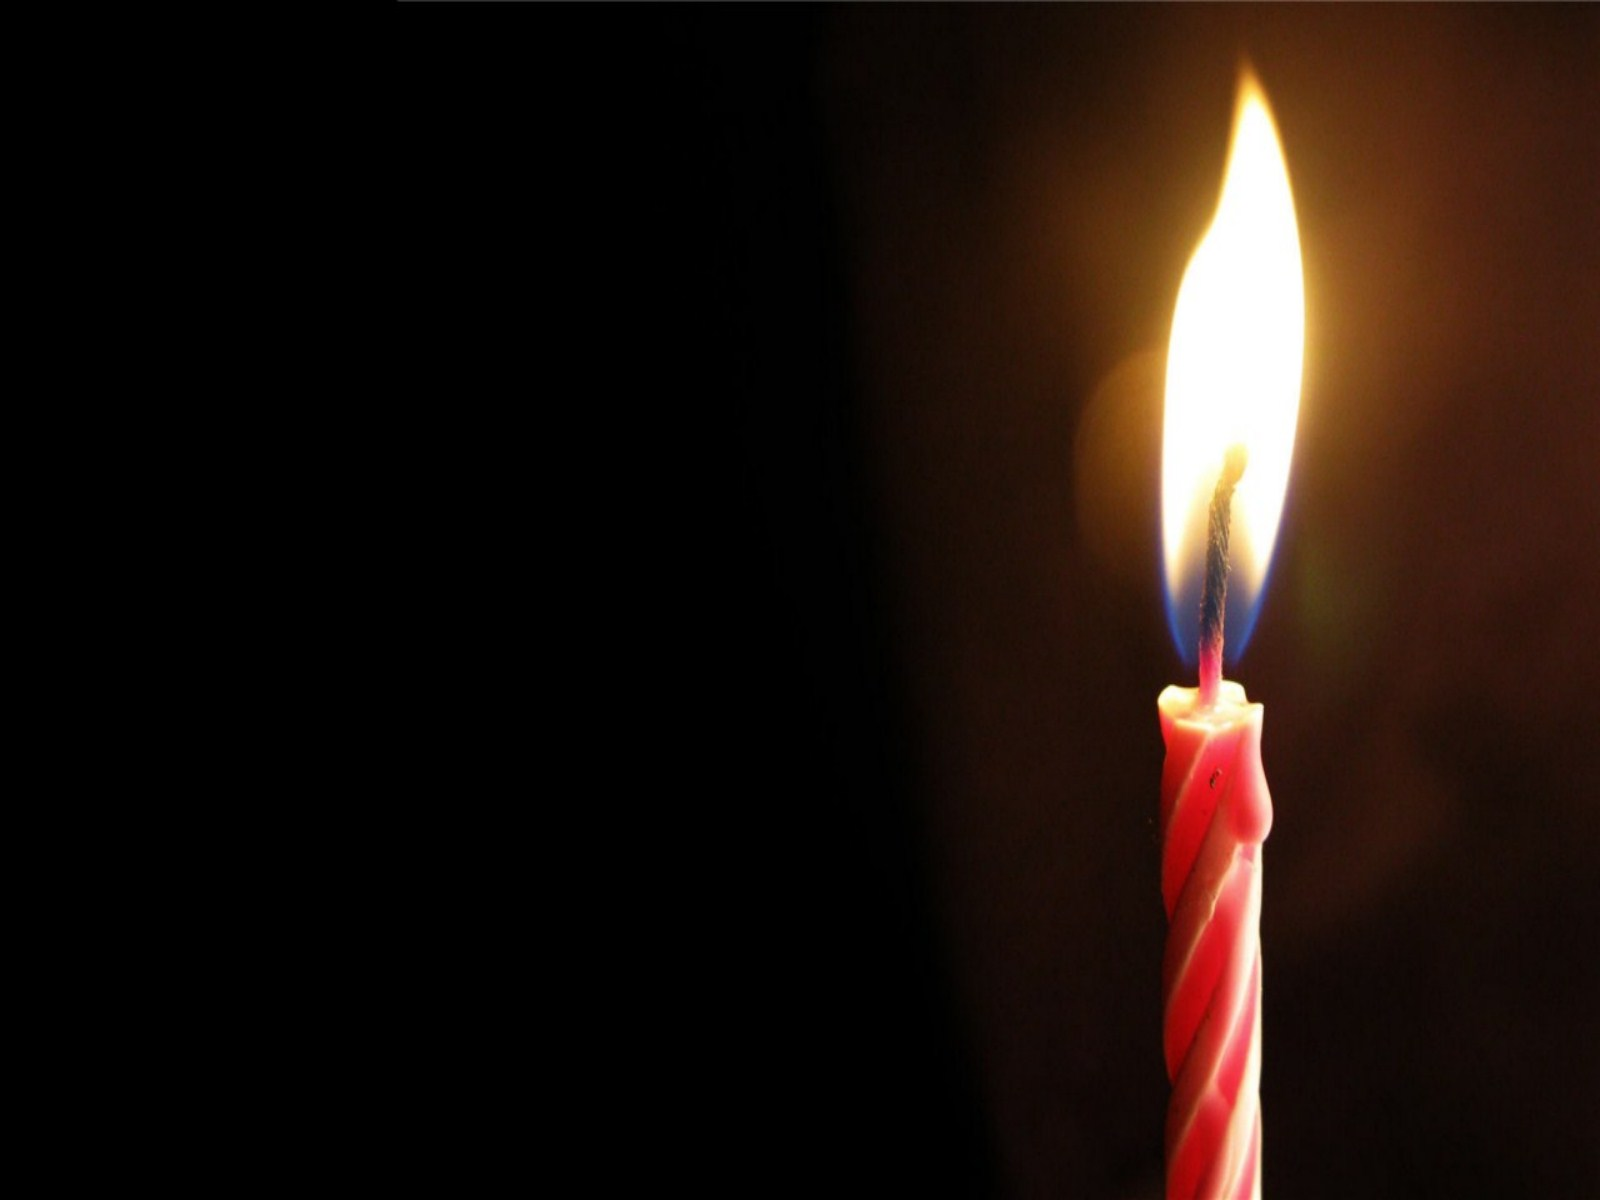 picture of birthday candles burning ; Burning-Birthday-Candle-Wallpaper